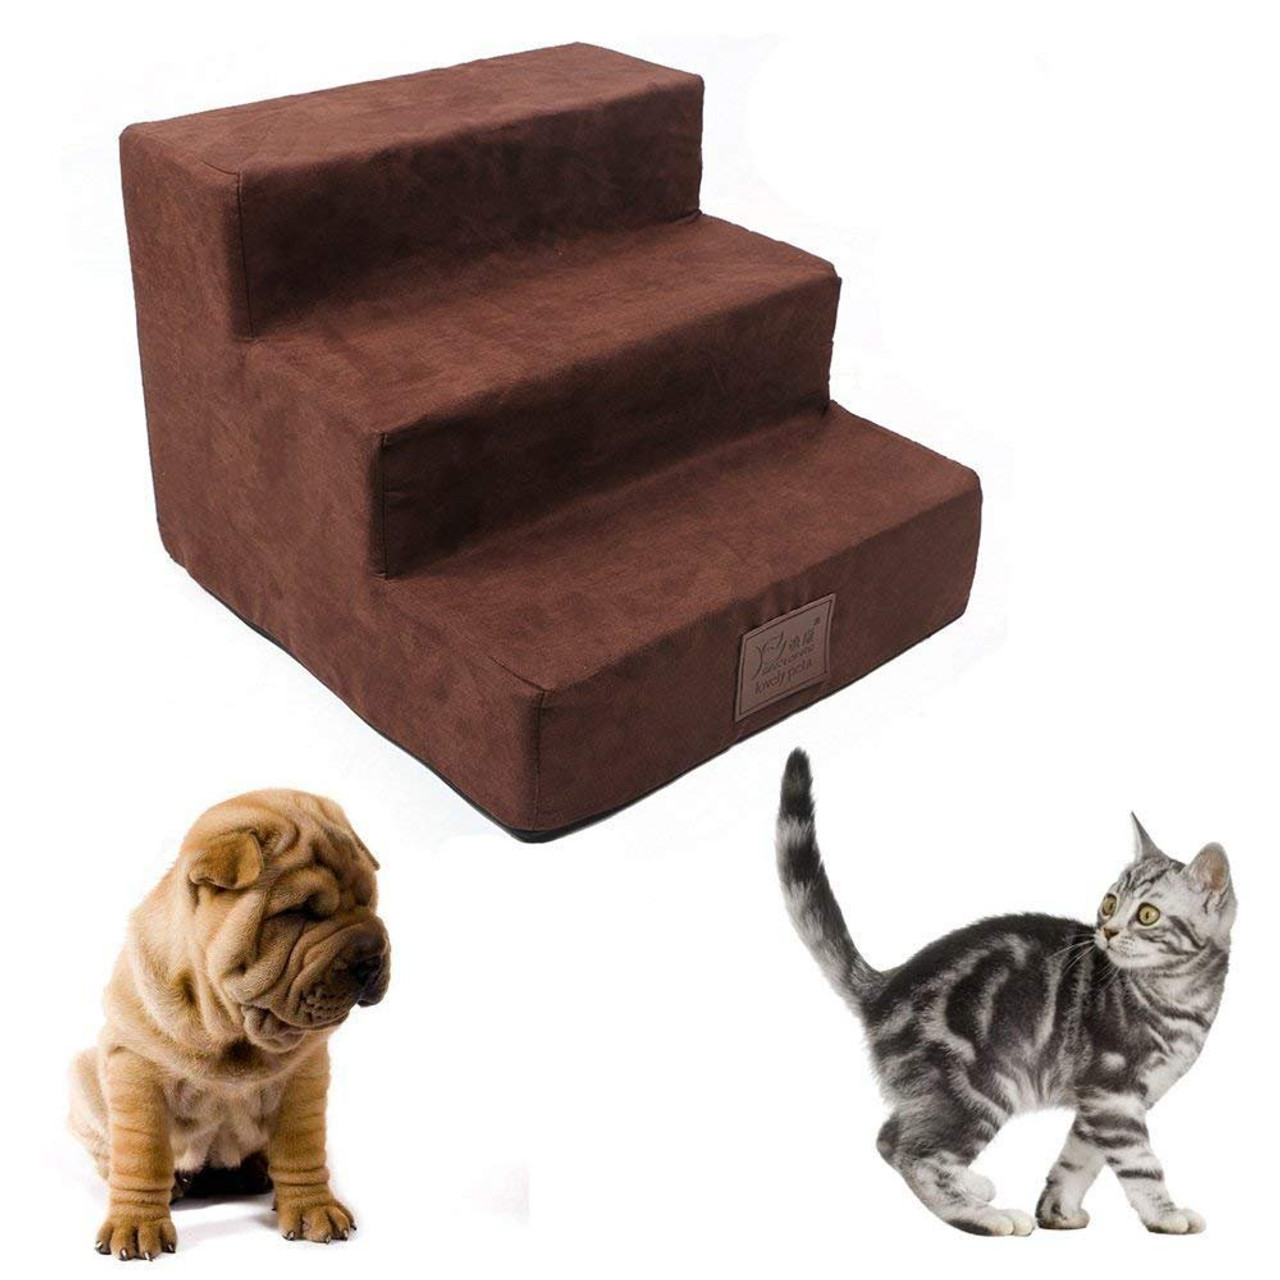 3 Steps Folding Pet Stairs Ramp Ladder Removable Cover for Cats Dogs Dog Stairs by Cozy Pet